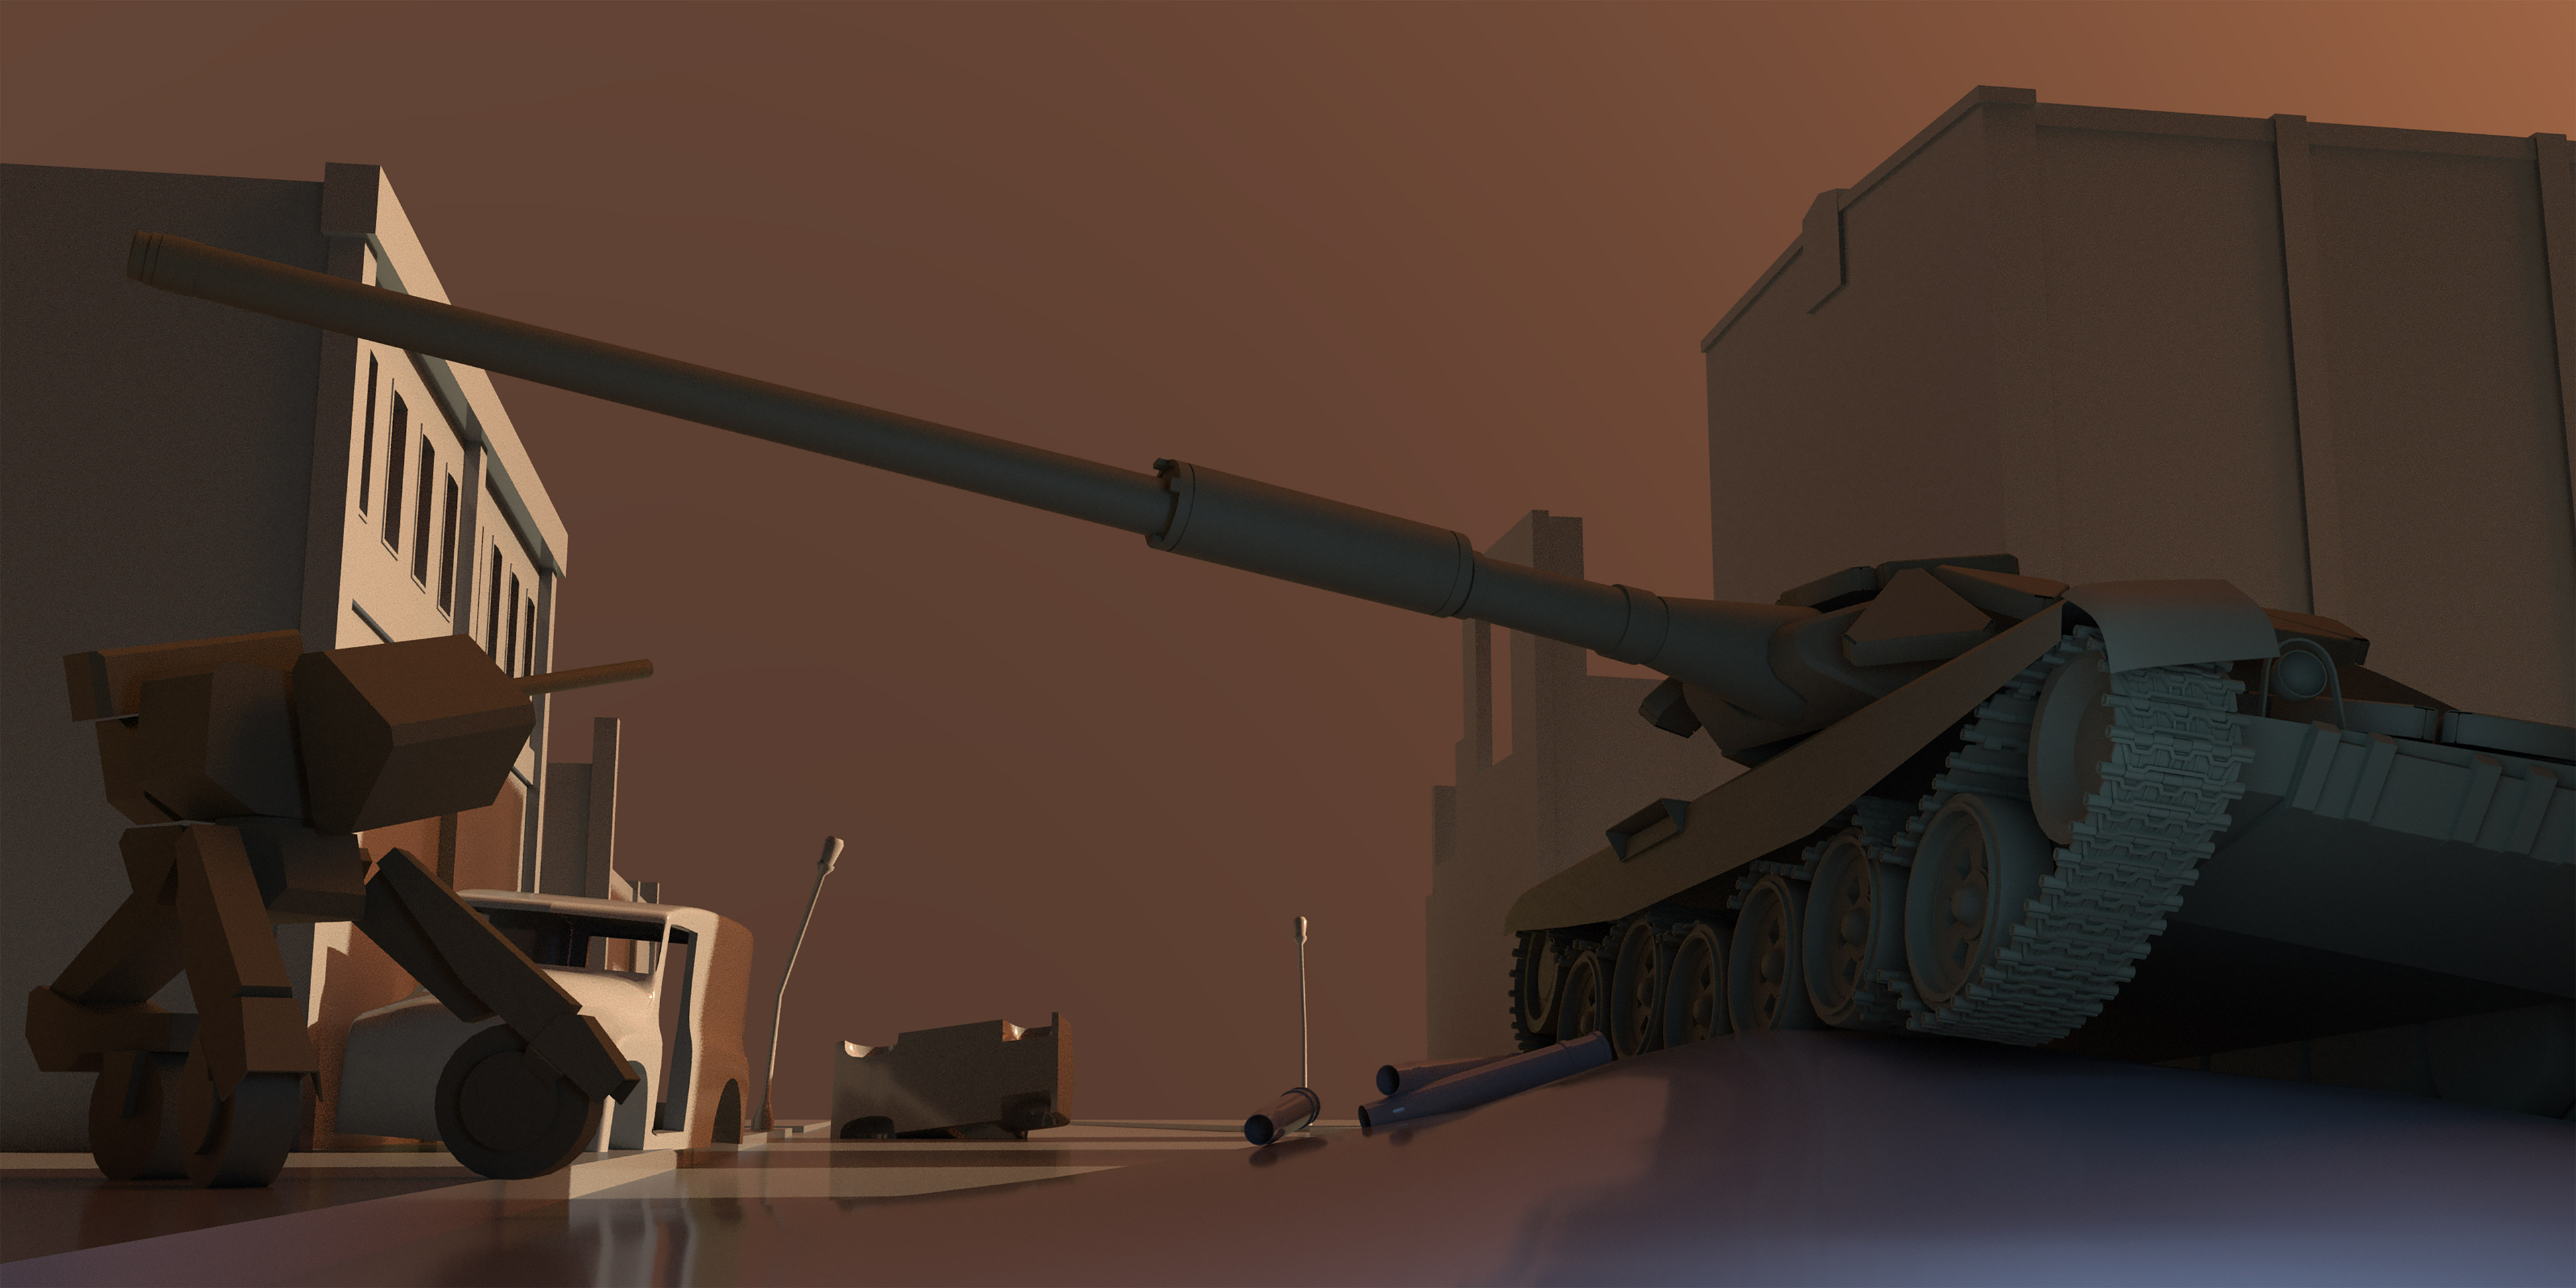 Raw Arnold render in 3ds Max.